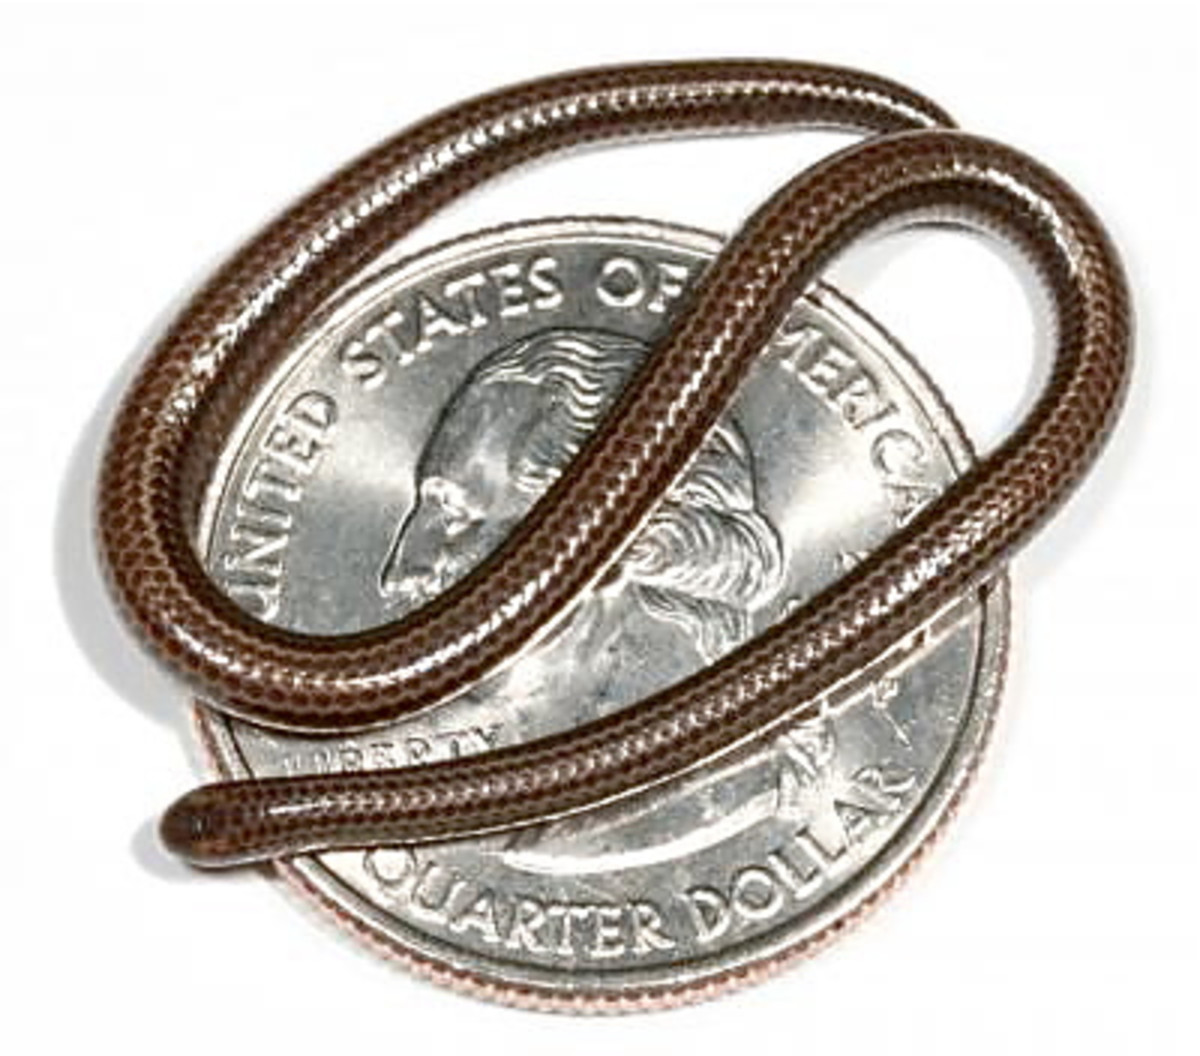 The Barbados threadsnake on a U.S. quarter